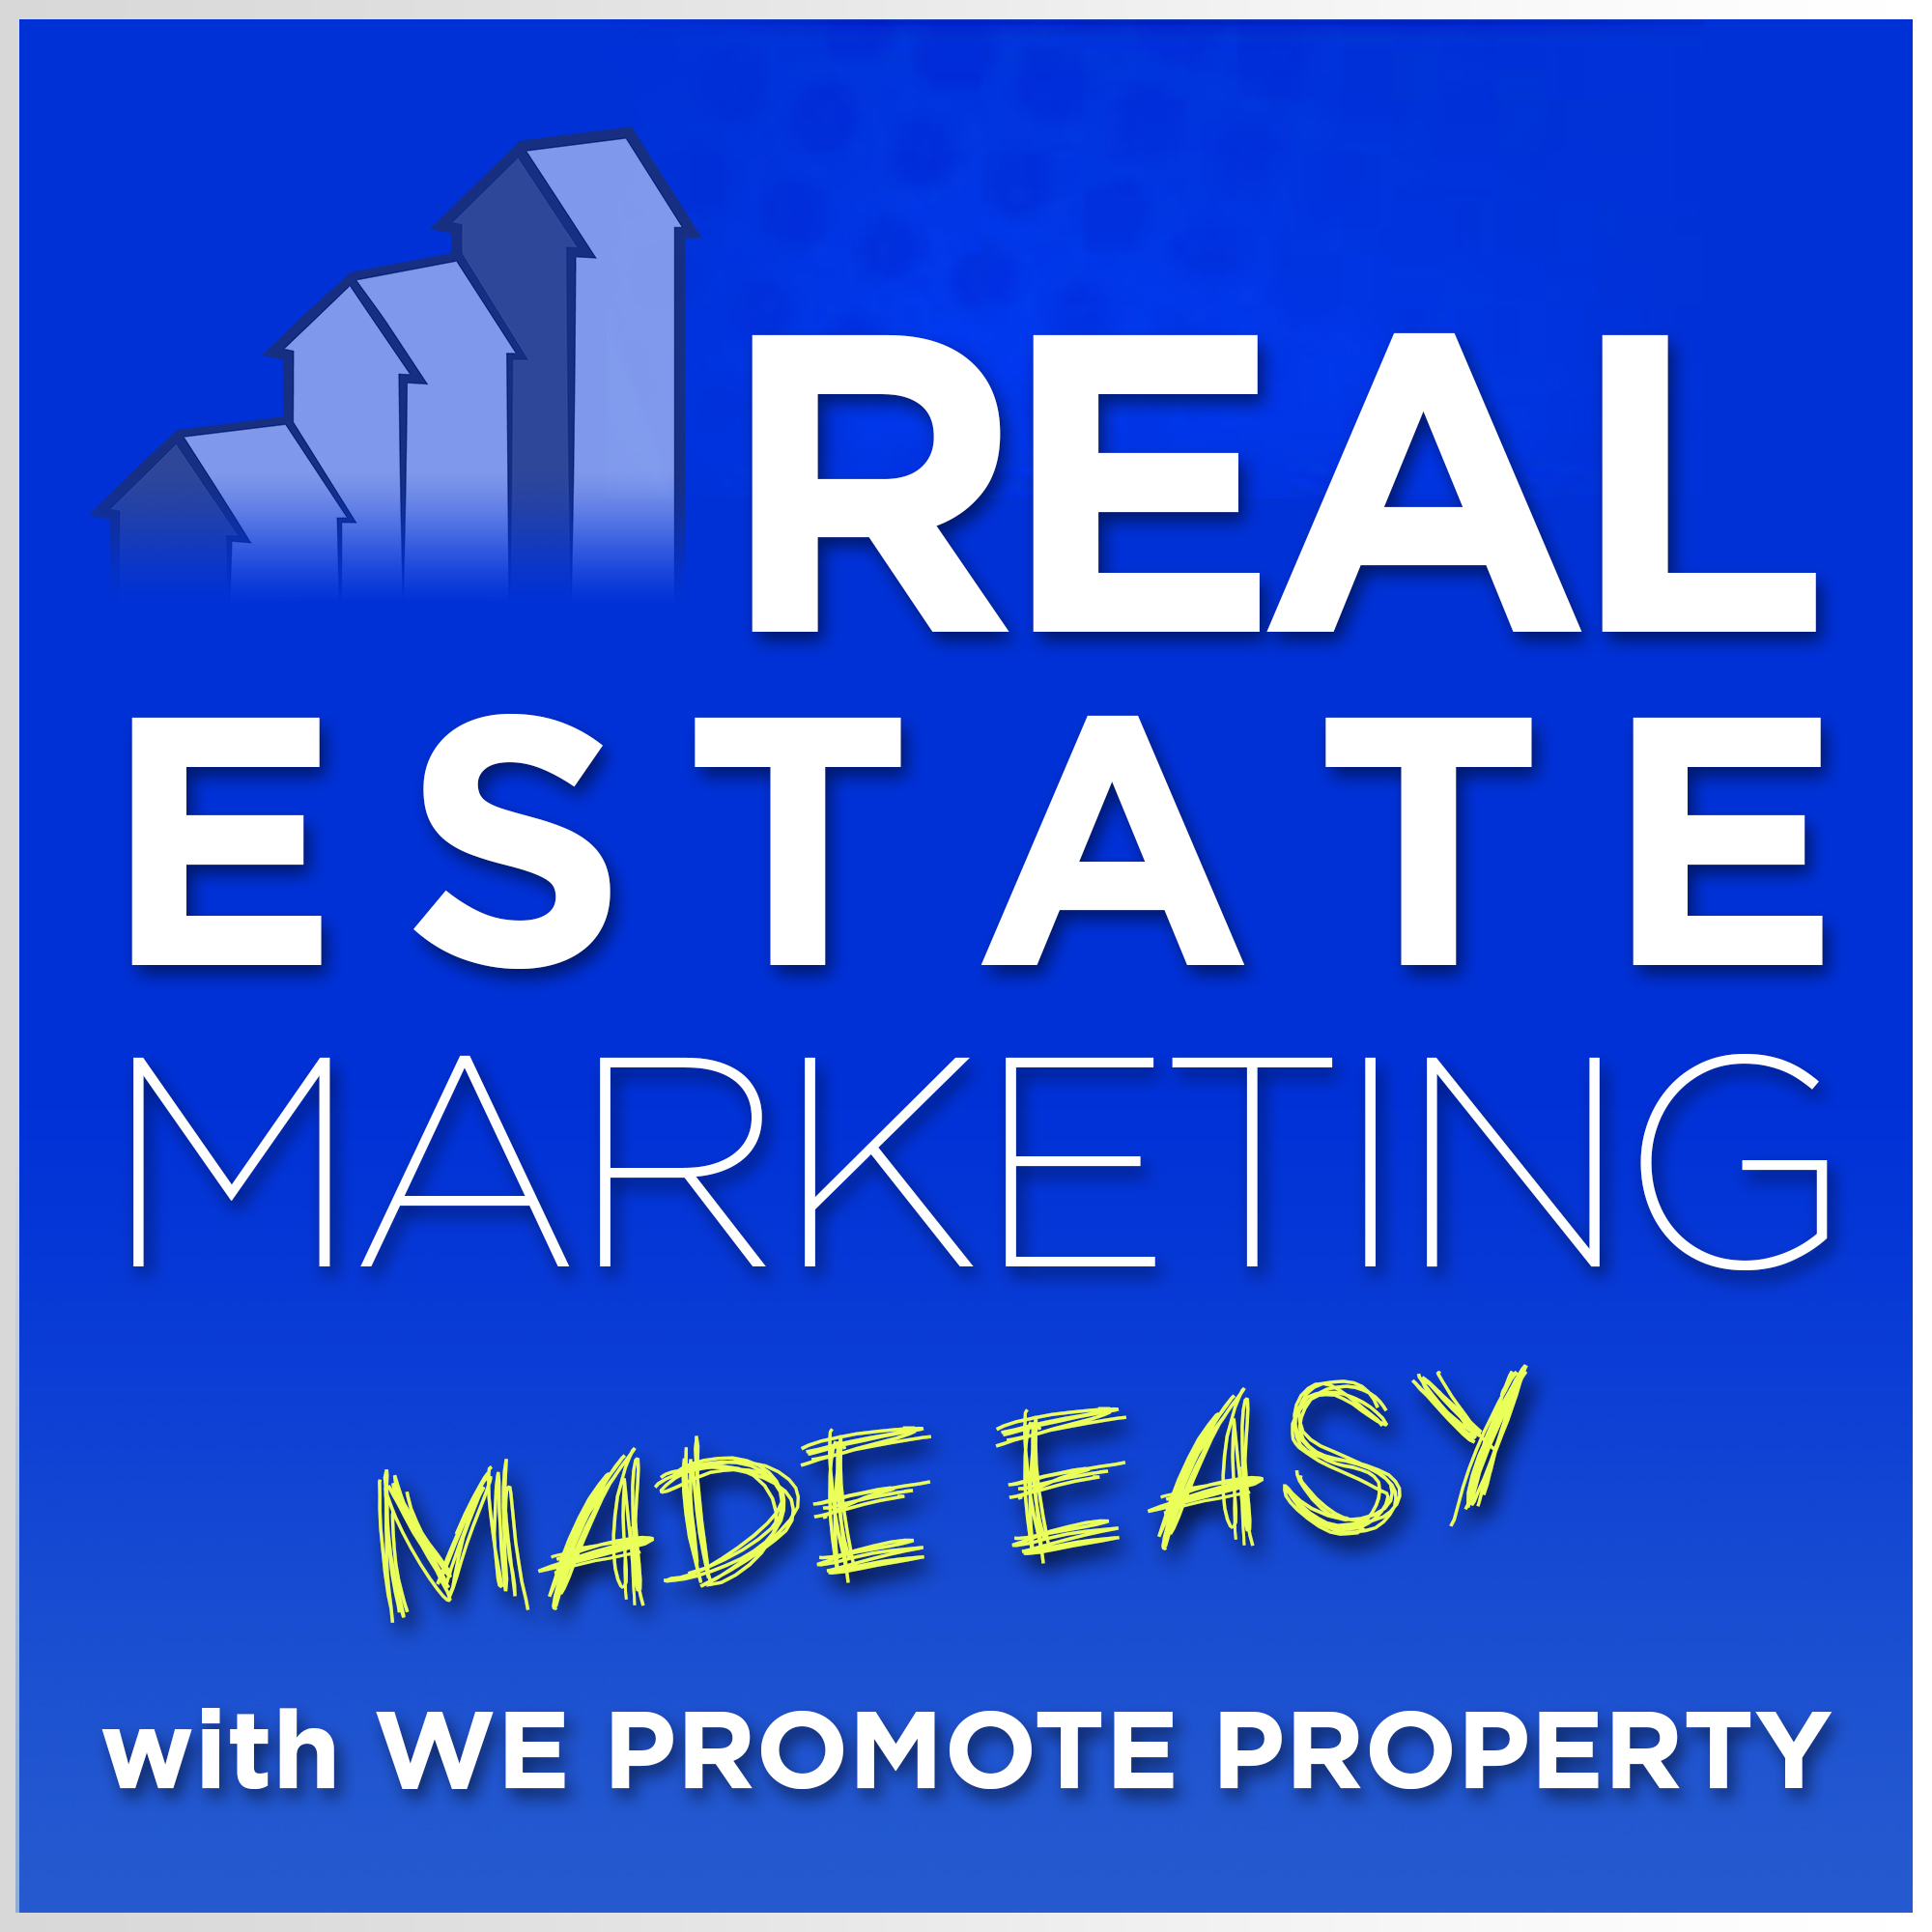 Real Estate Marketing Made Easy